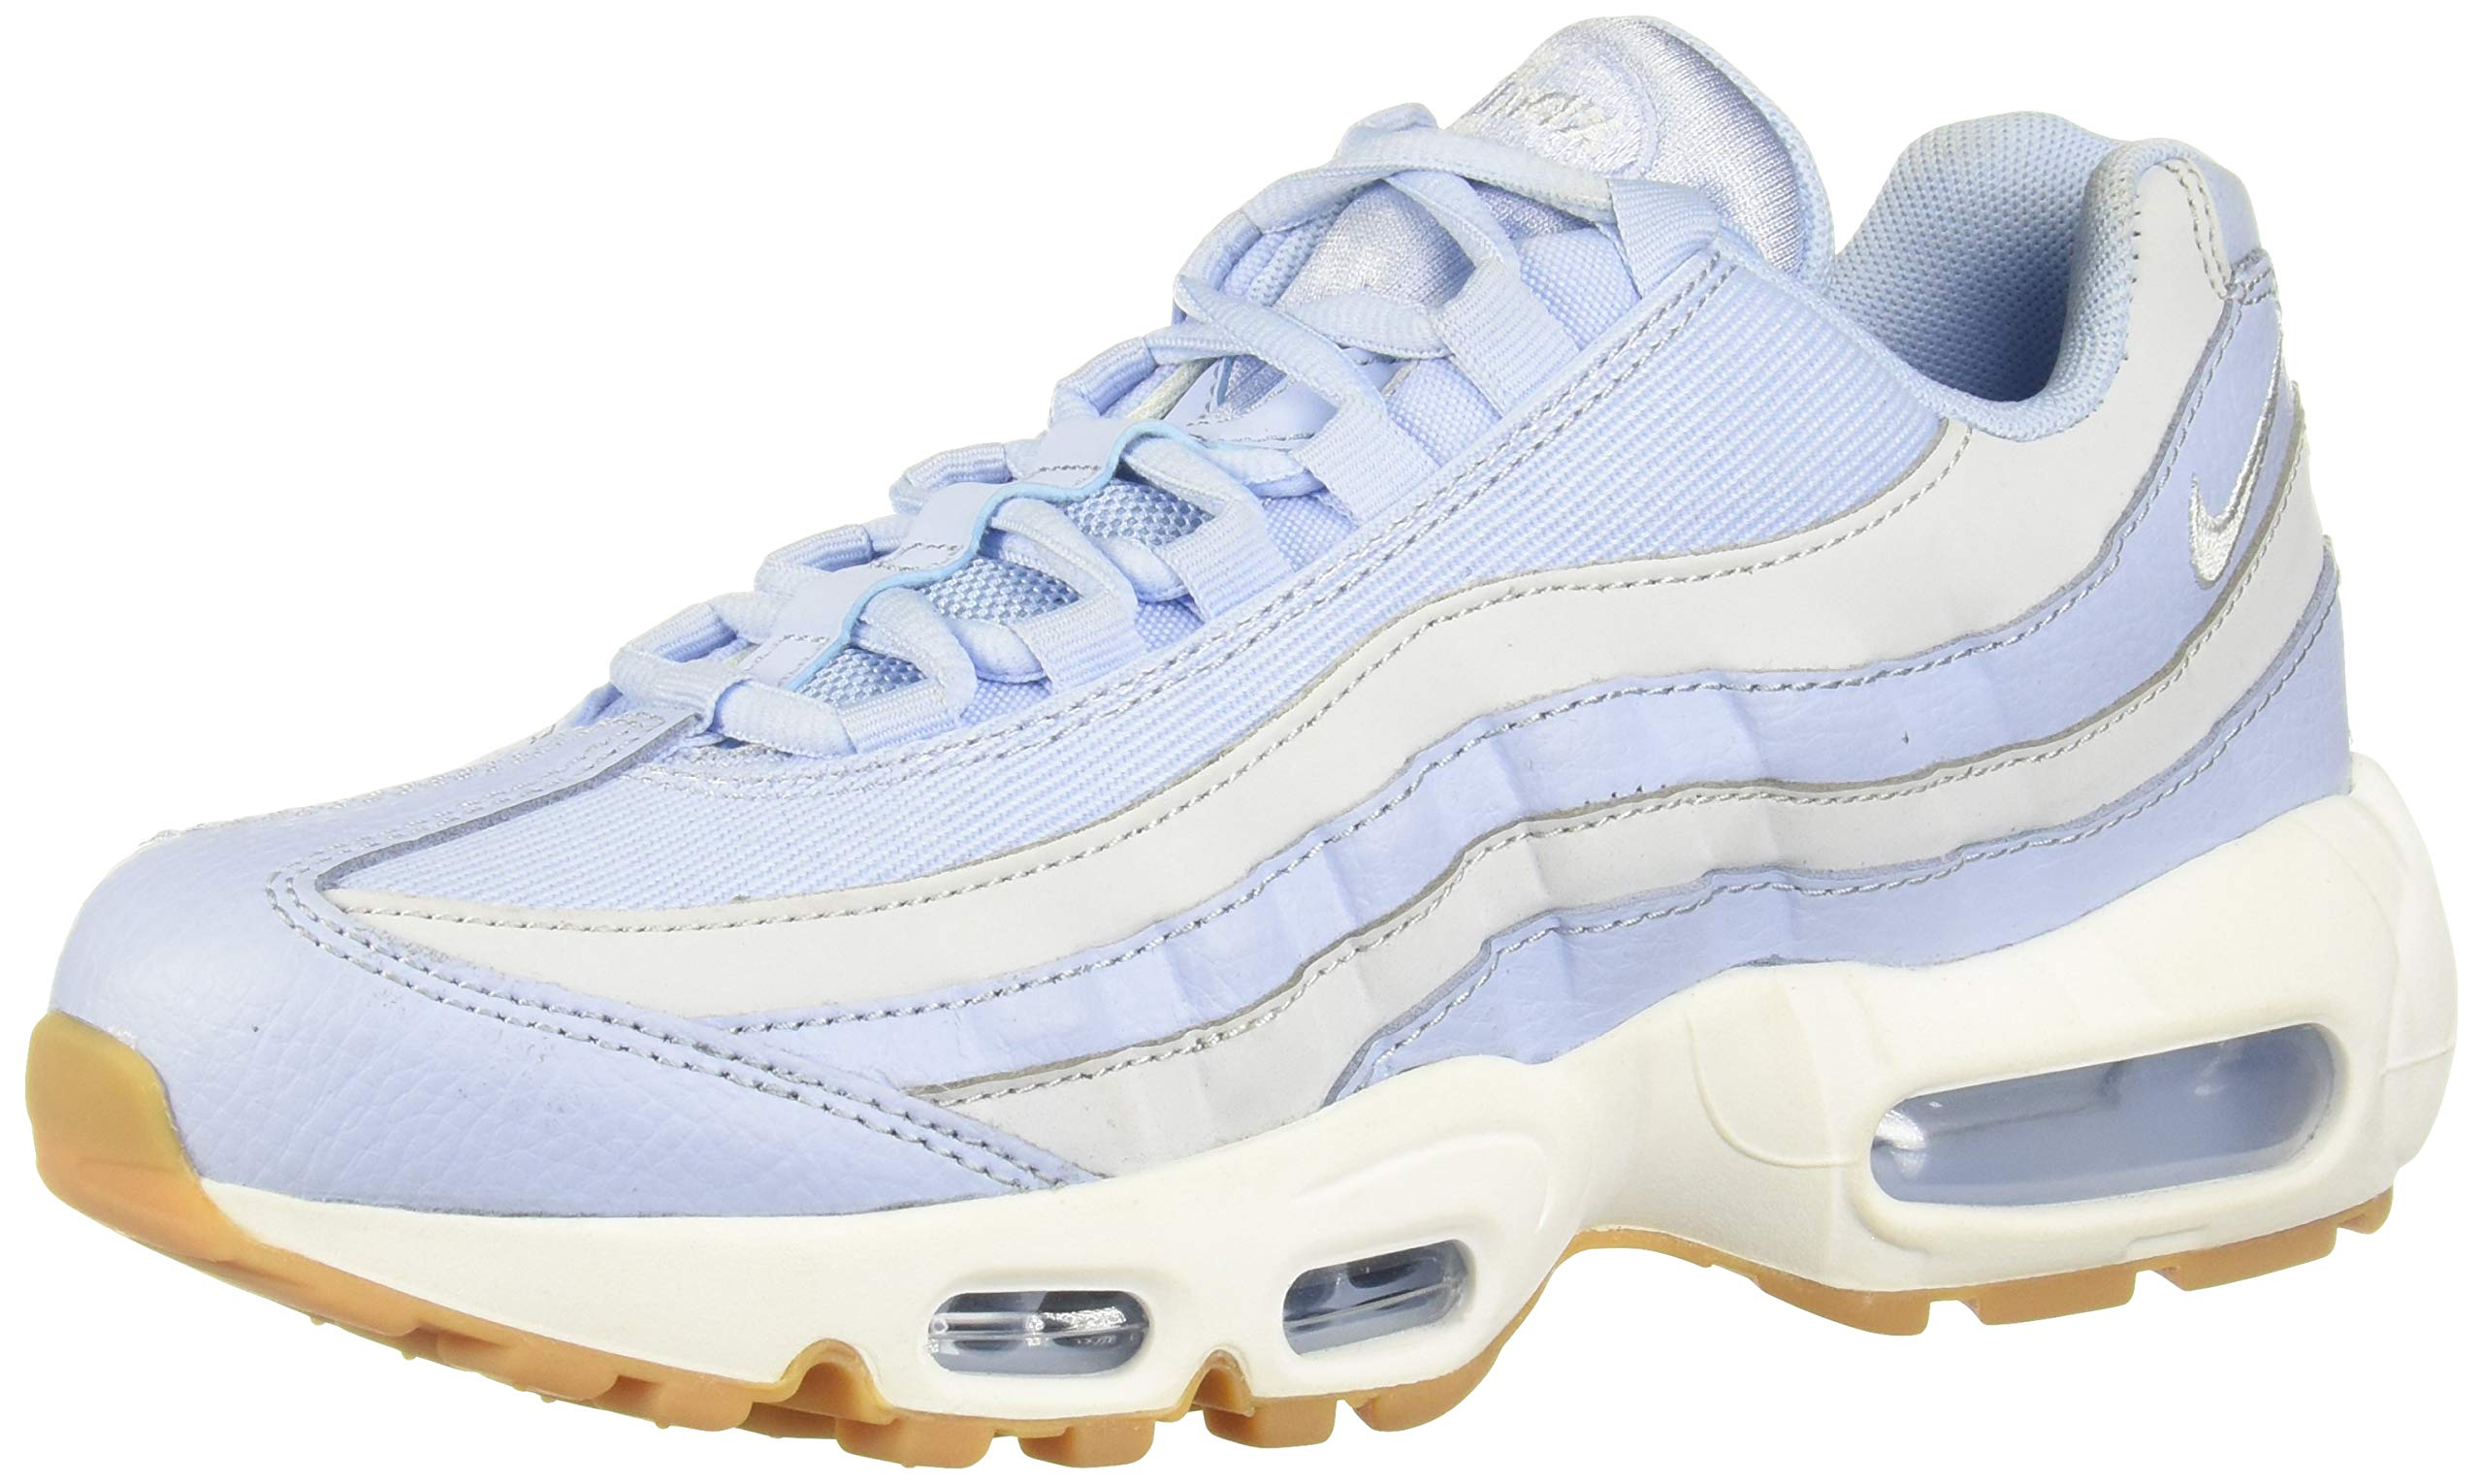 new style 60f5a 158b1 Nike Women's Air Max 95 Royal Tint/Pure Platinum Casual Shoe 6 Women US